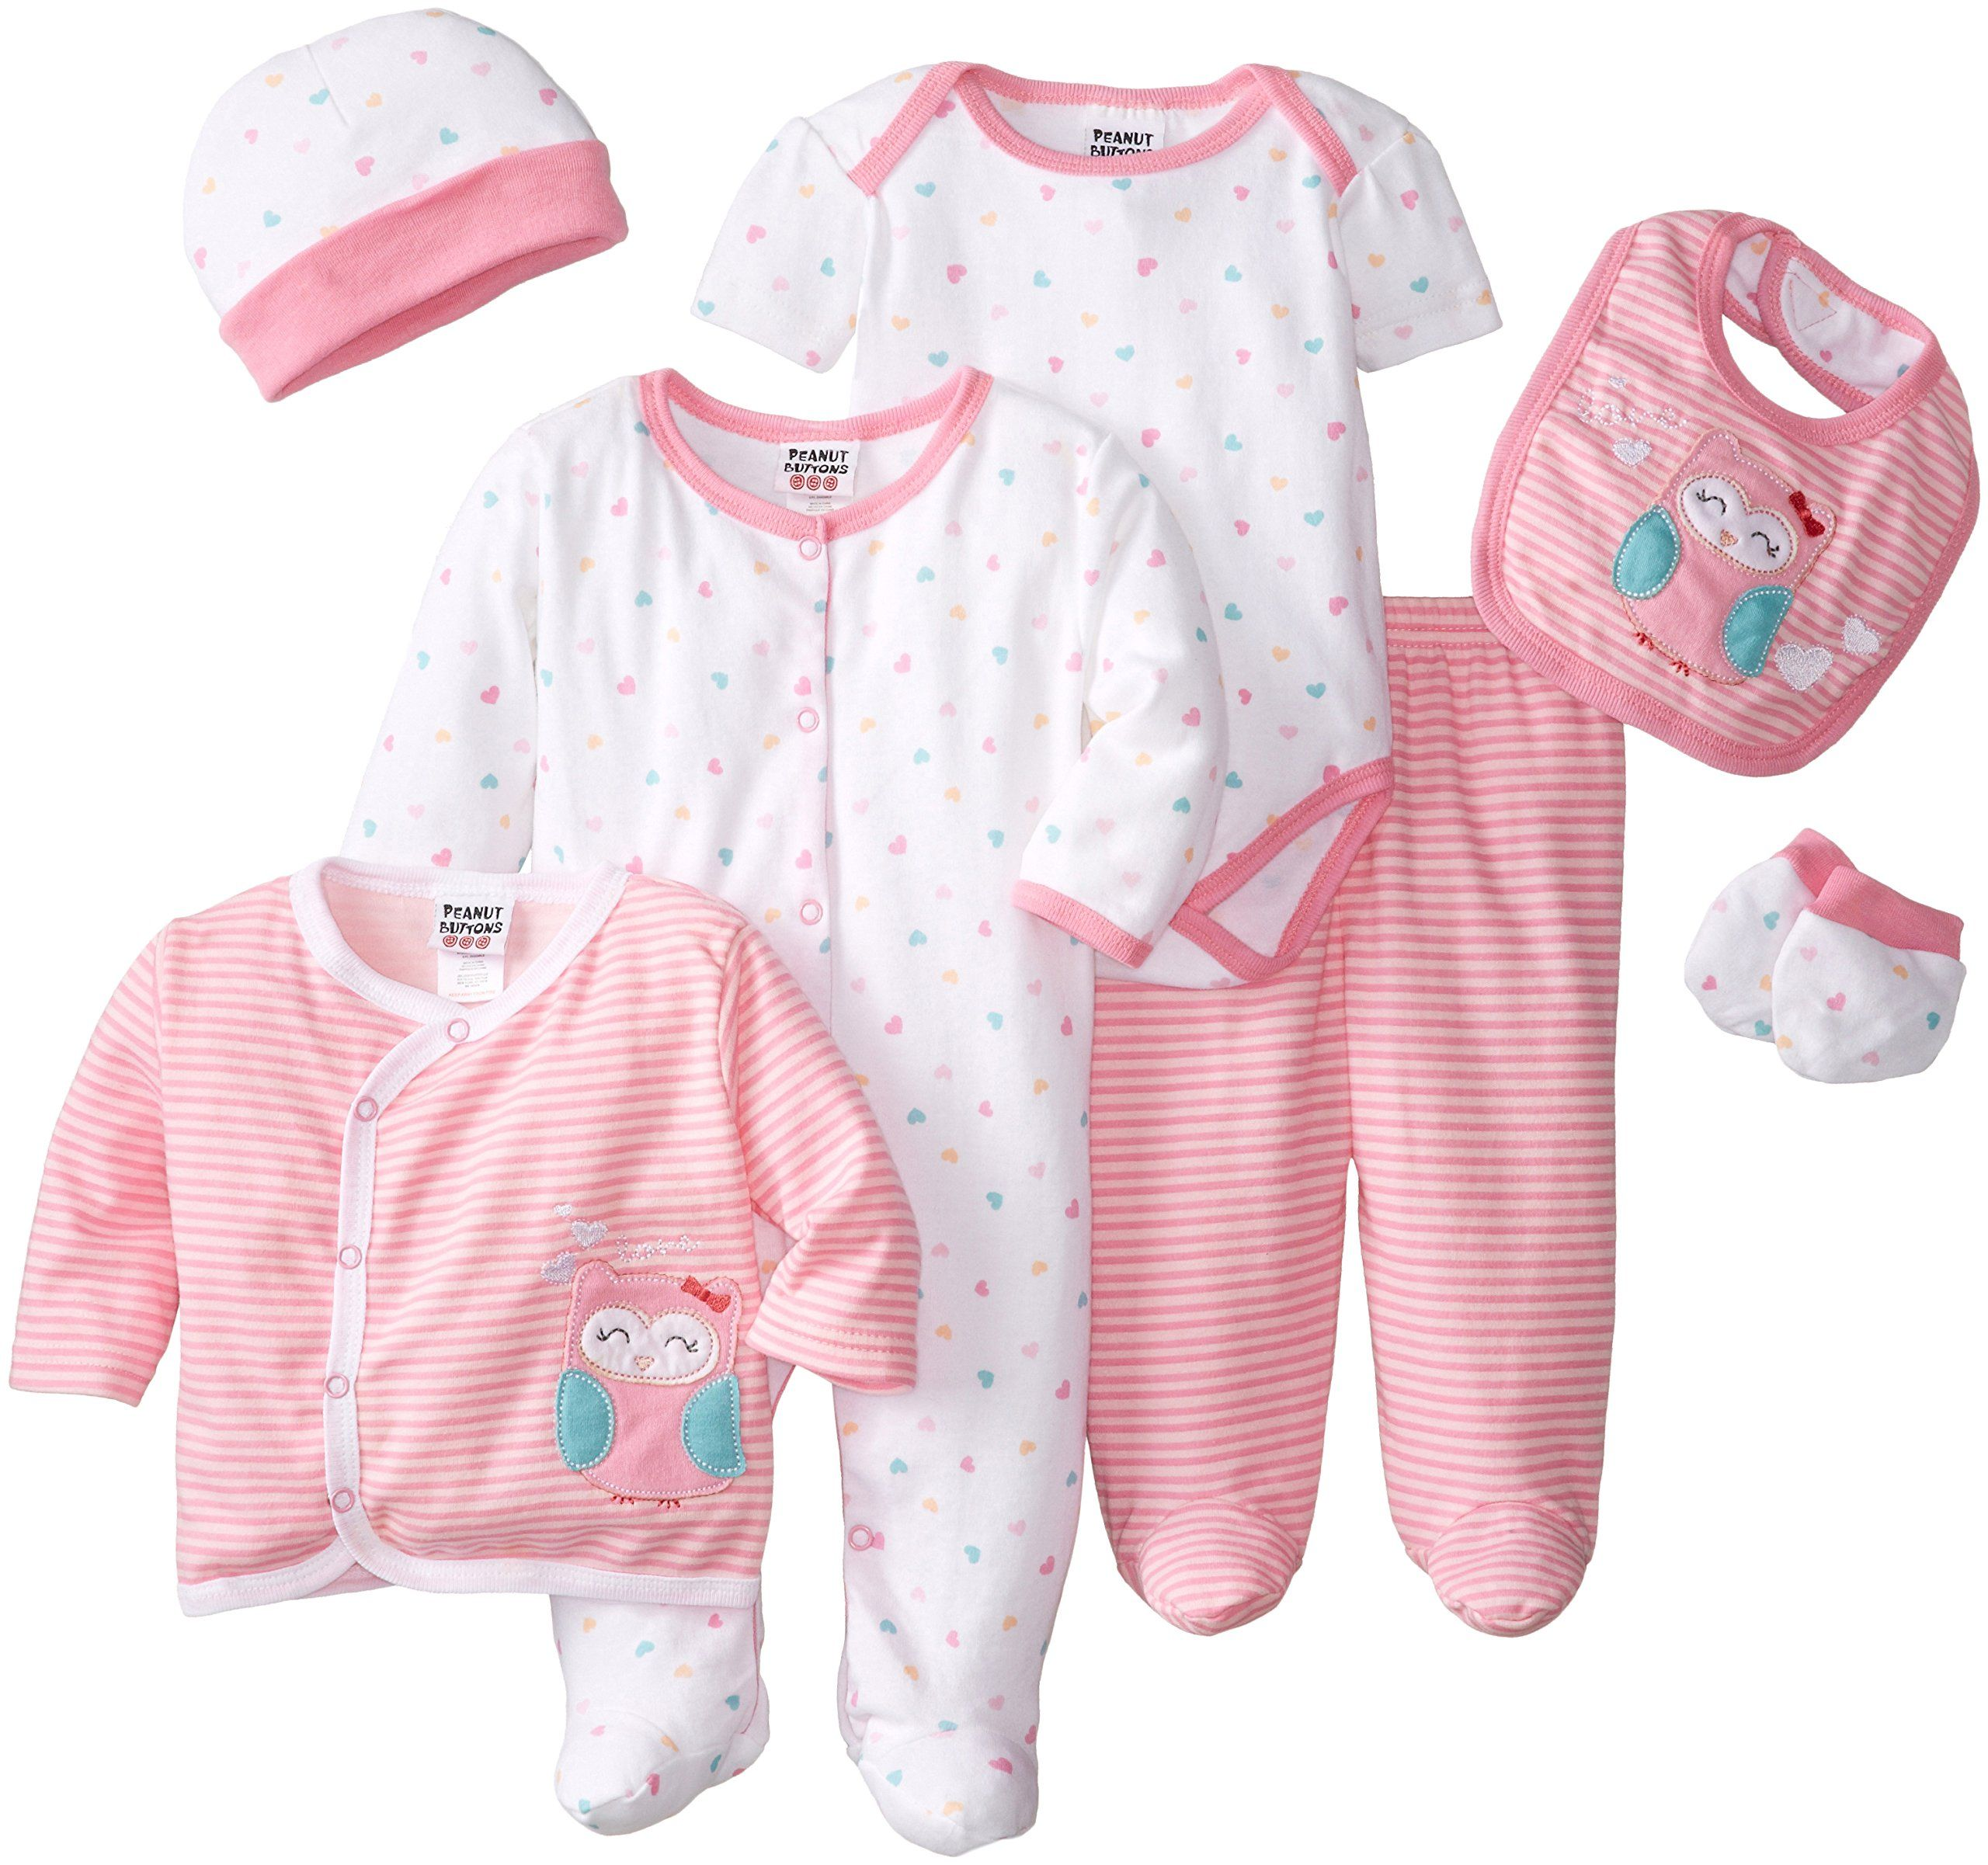 Premature Baby Girl Pink Unicorn Hooded Jacket and Trousers Set